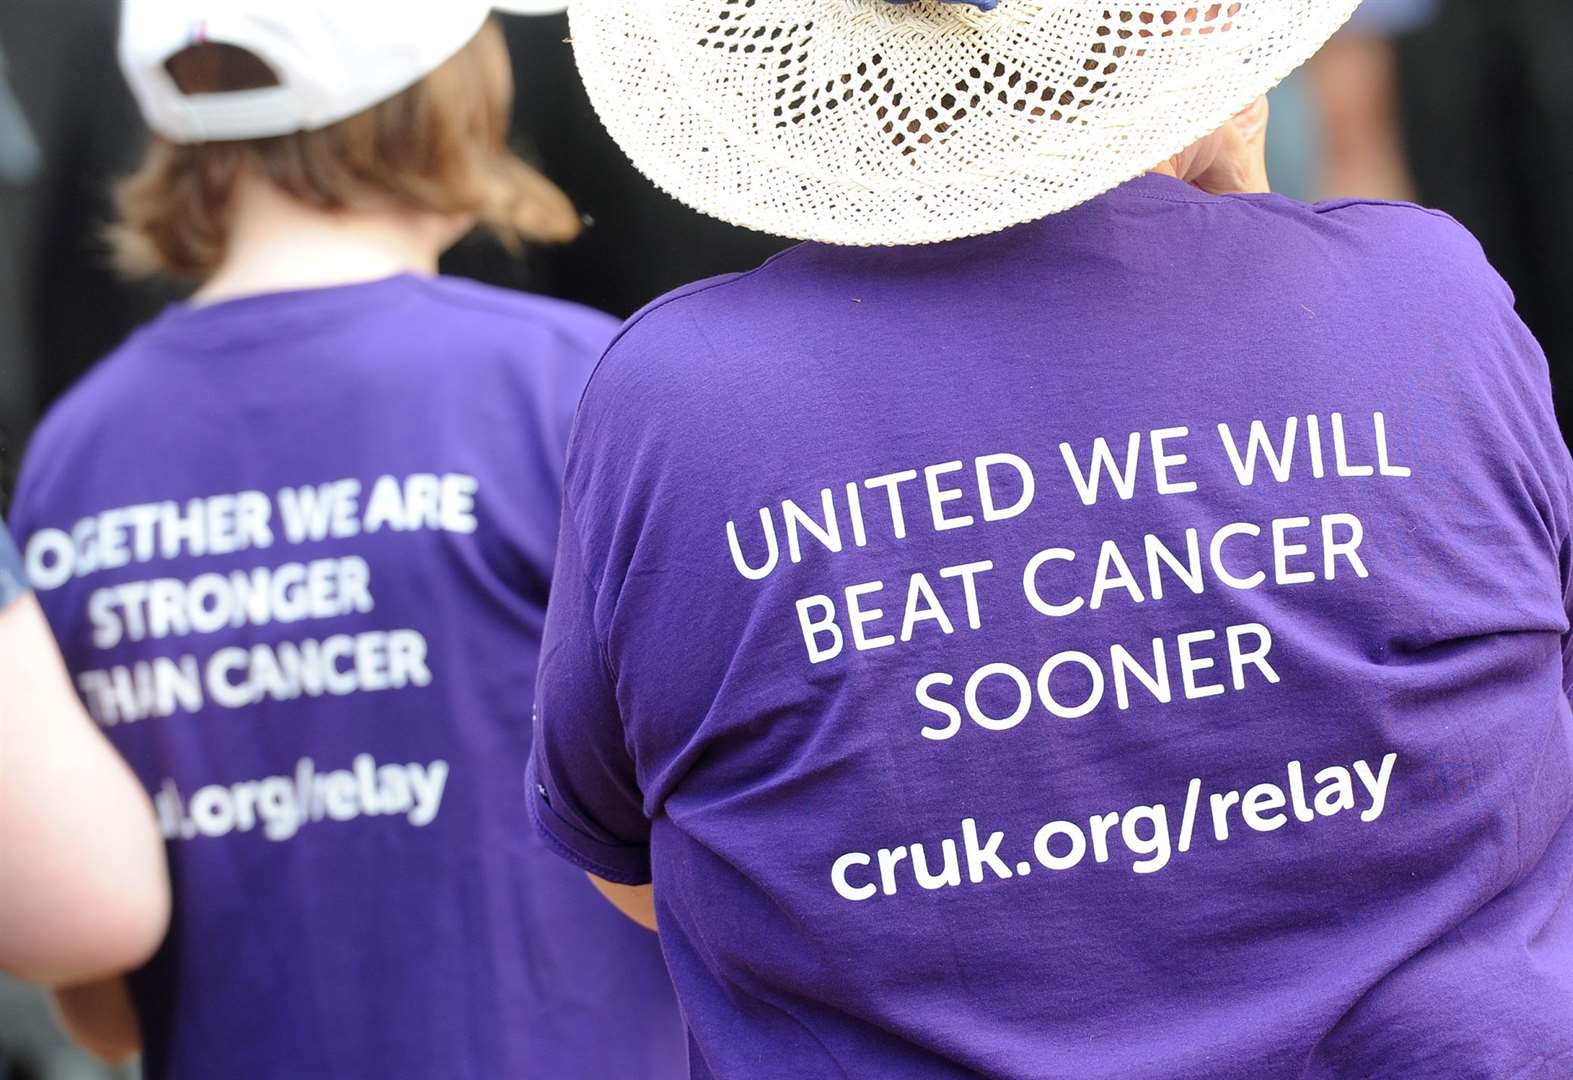 Preparations under way for Bury St Edmunds Relay for Life